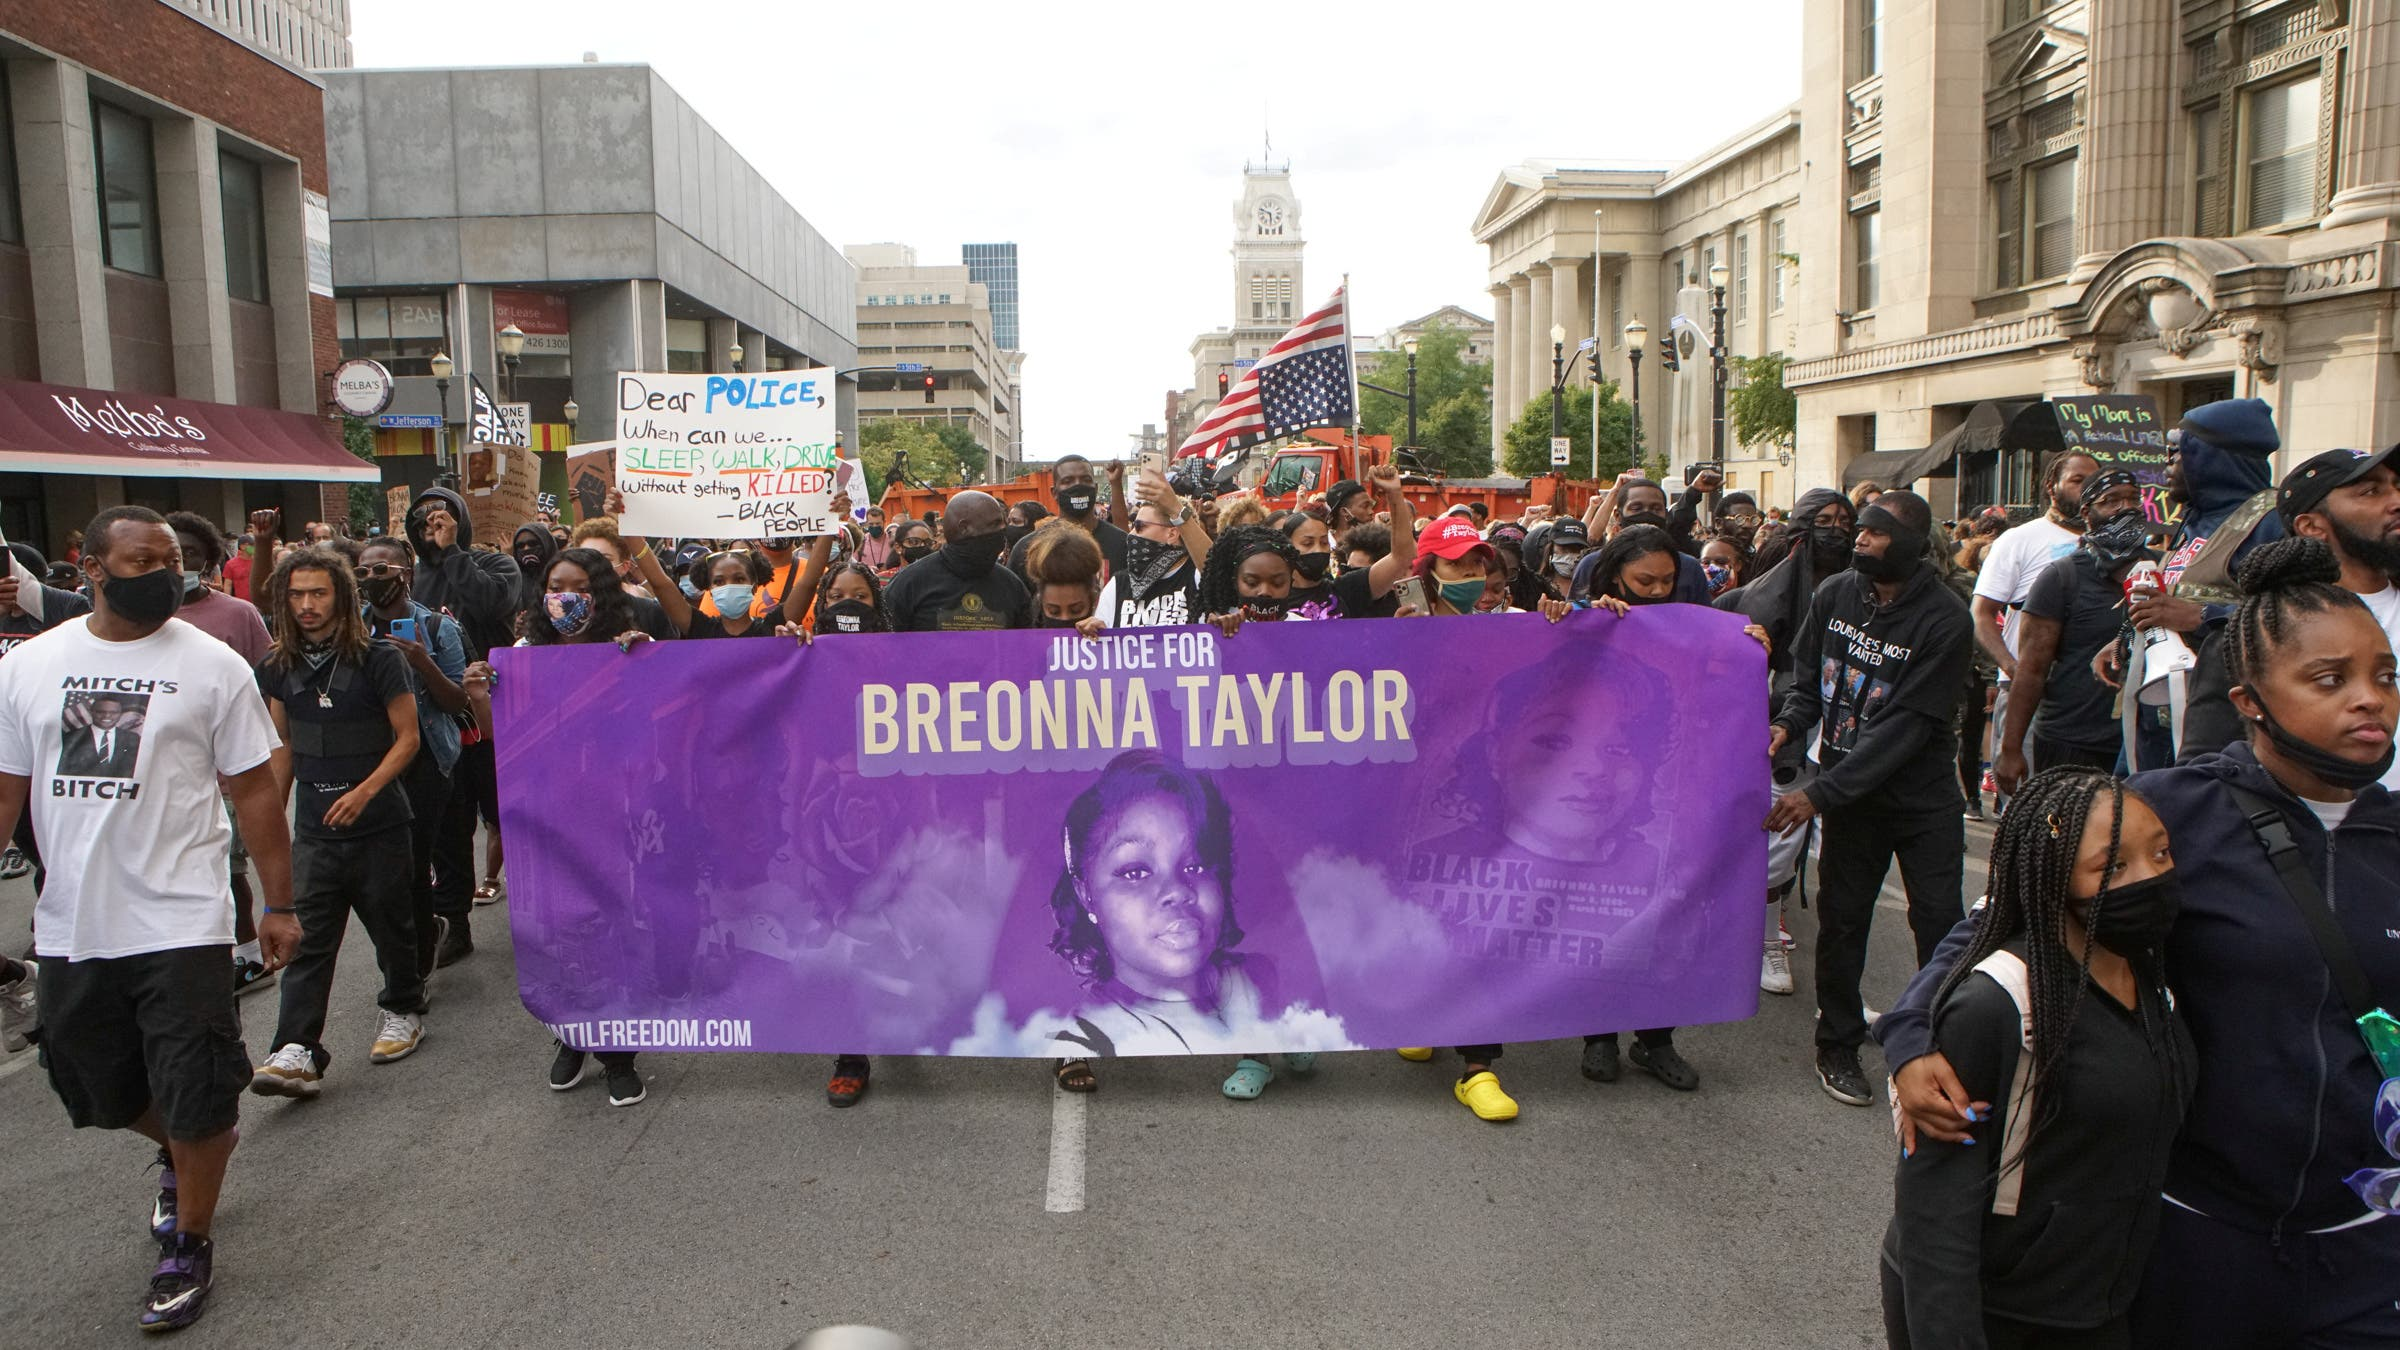 Protesters march through downtown Louisville after a grand jury decided not to bring homicide charges against police officers involved in the fatal shooting of Breonna Taylor, in Louisville, Kentucky September 25, 2020. (Reuters)